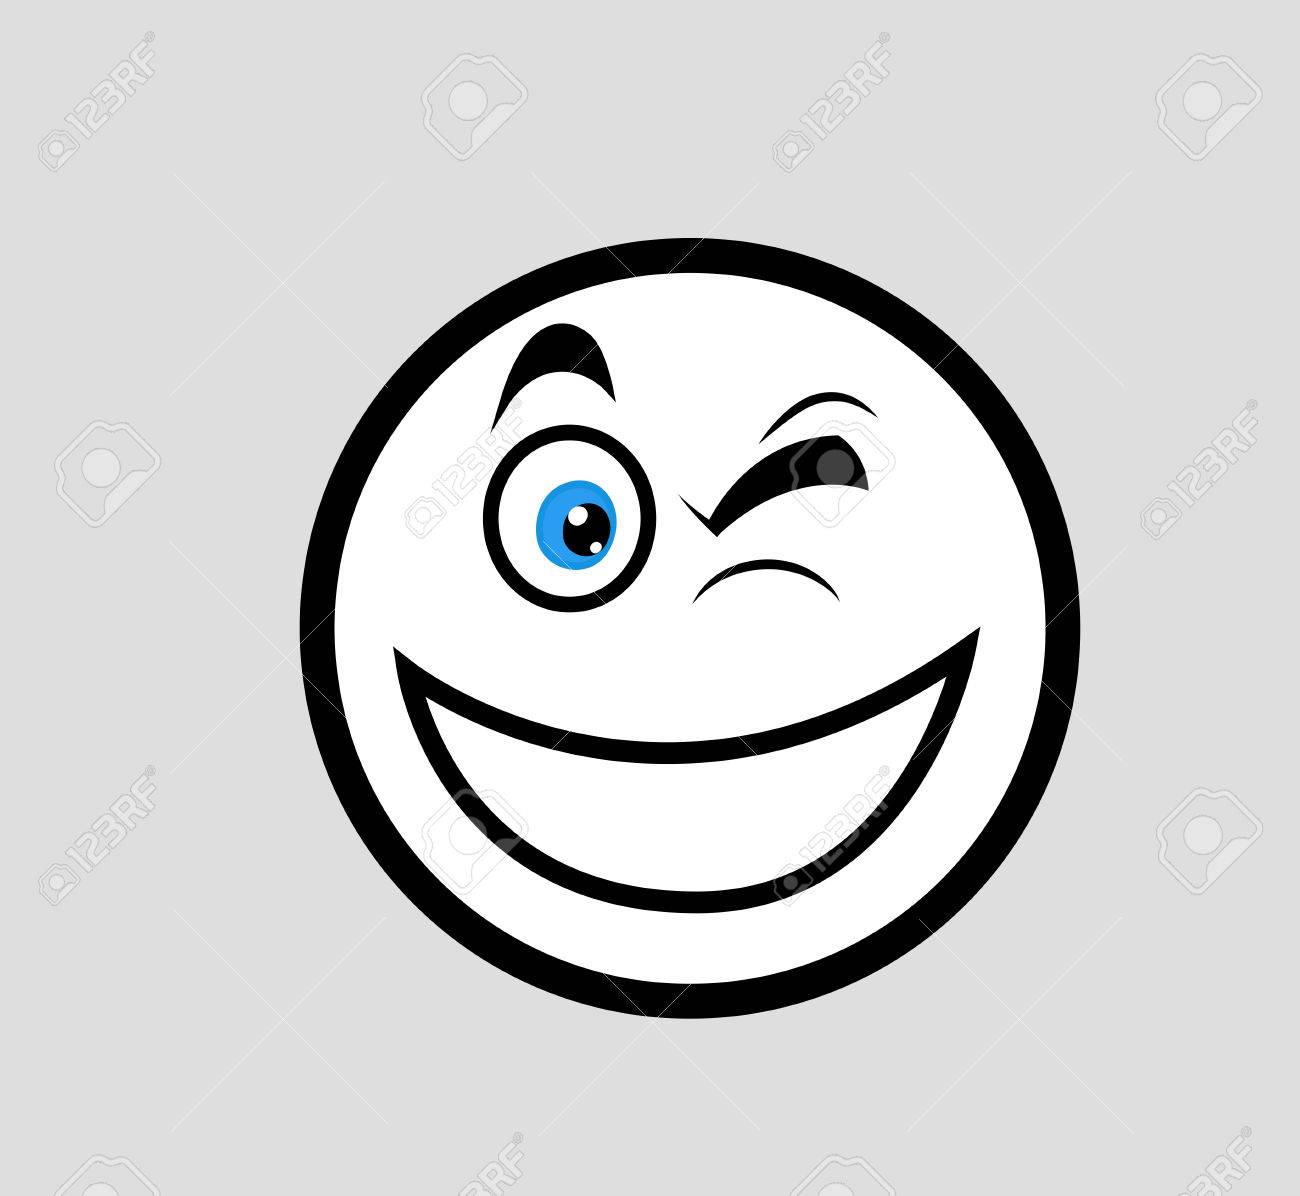 winking eye smile clipart royalty free cliparts vectors and stock rh 123rf com Man Winking Clip Art Winking Eye Drawing